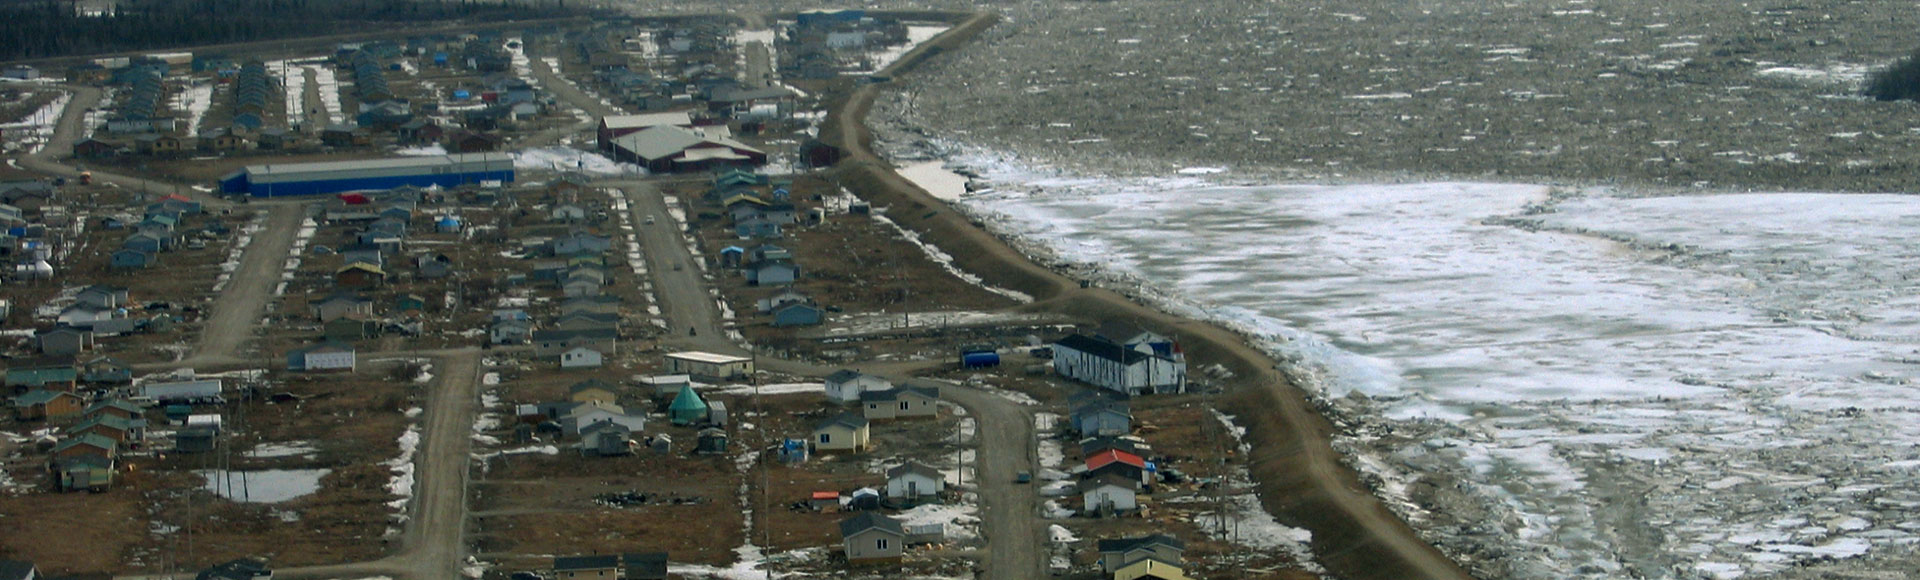 A stabilizing berm holds off ice and water from overflowing into the Kashechewan First Nation